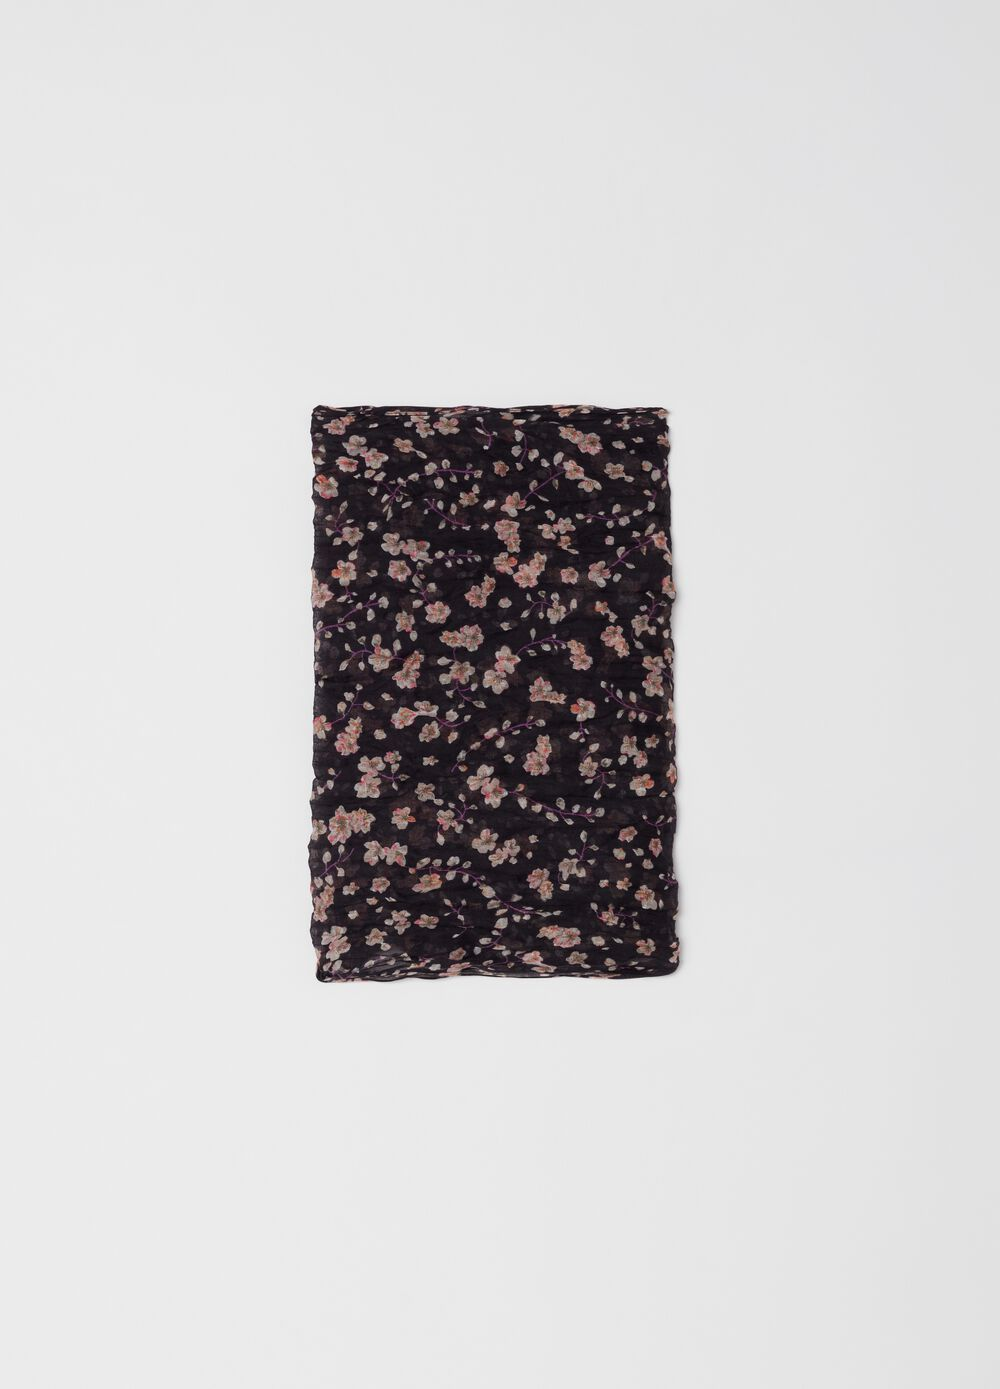 Crinkle pashmina with floral pattern